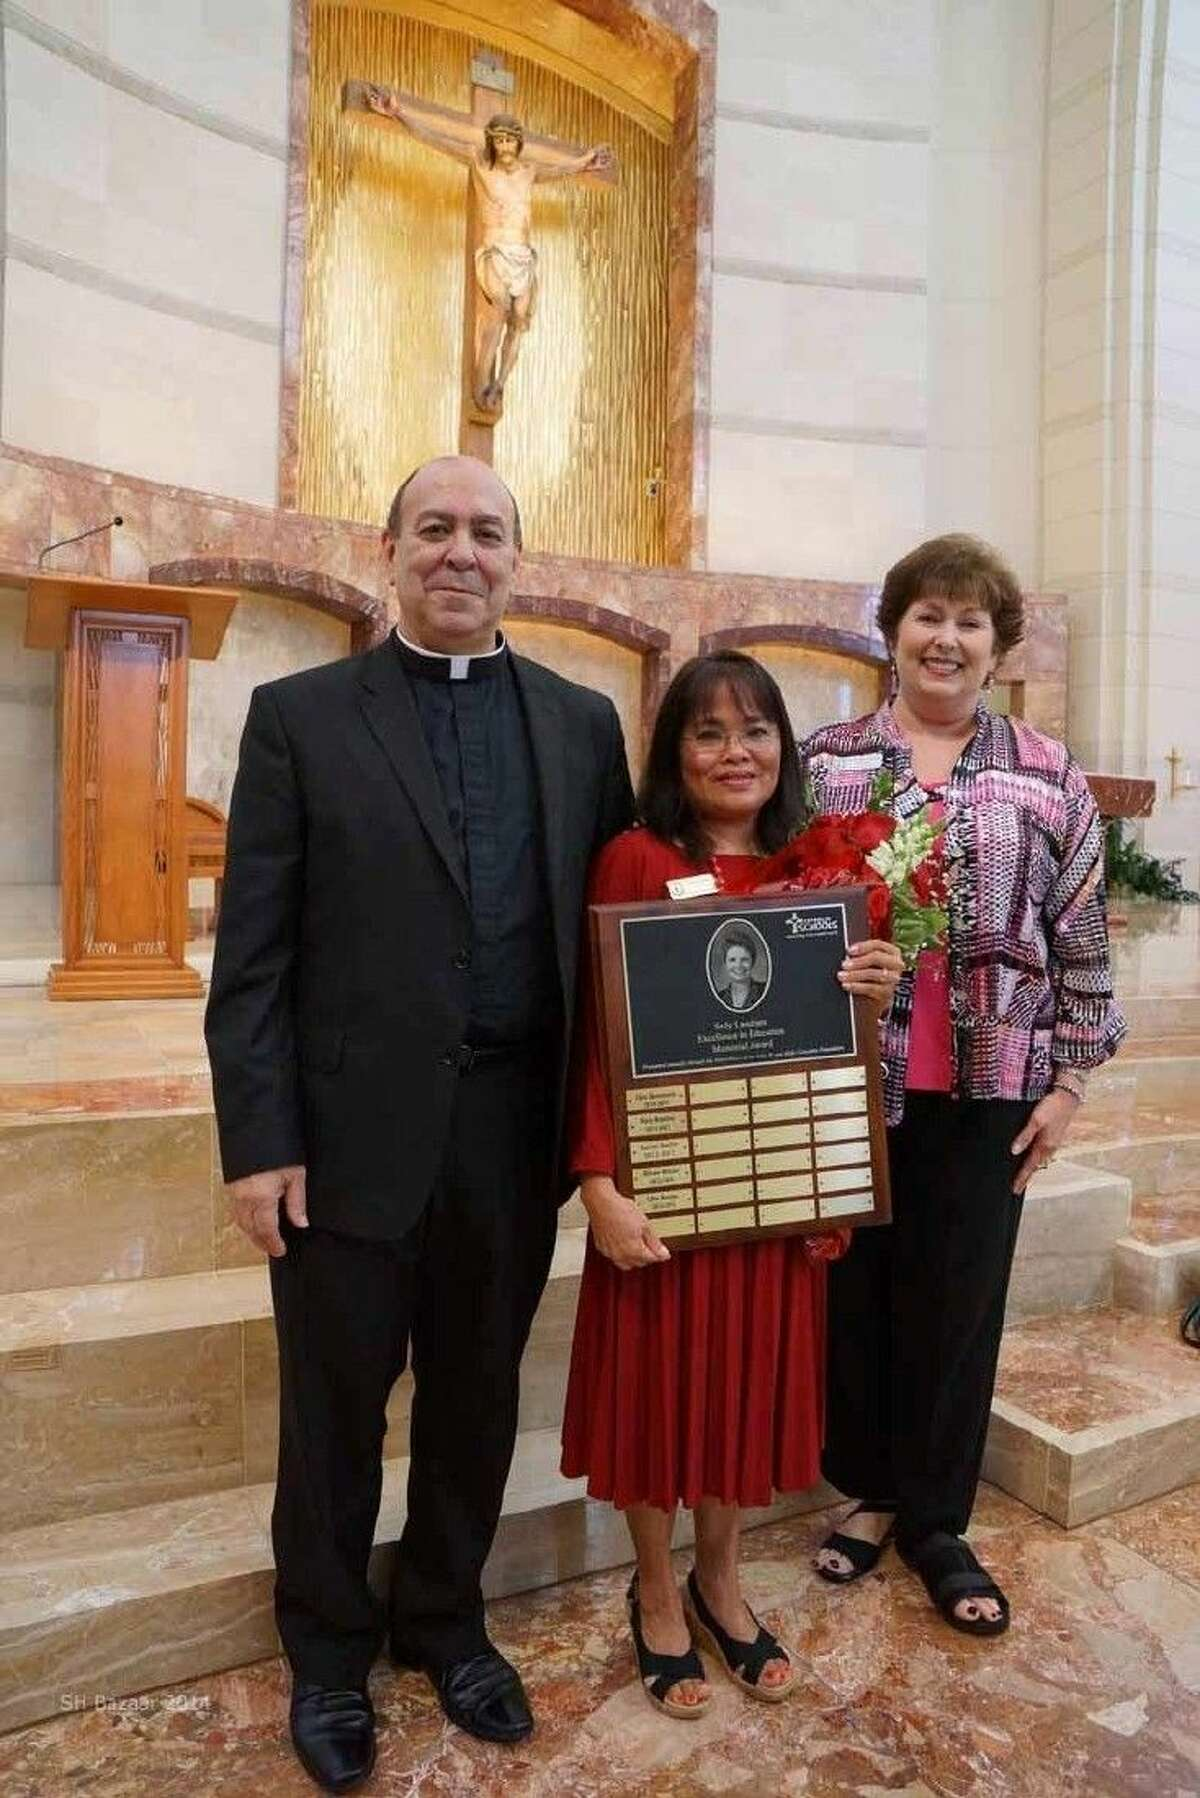 The 2014-15 Sally Landrum Excellence in Teaching award was recently presented to Mrs. Lilia Keister, one of the founding teachers of St Helen Catholic School. Pictured from left: Fr. James Courville, Parochial Vicar, St. Helen Catholic Church; Lilia Keister, award winner; Phyliss Coleman, Principal, St. Helen Catholic School